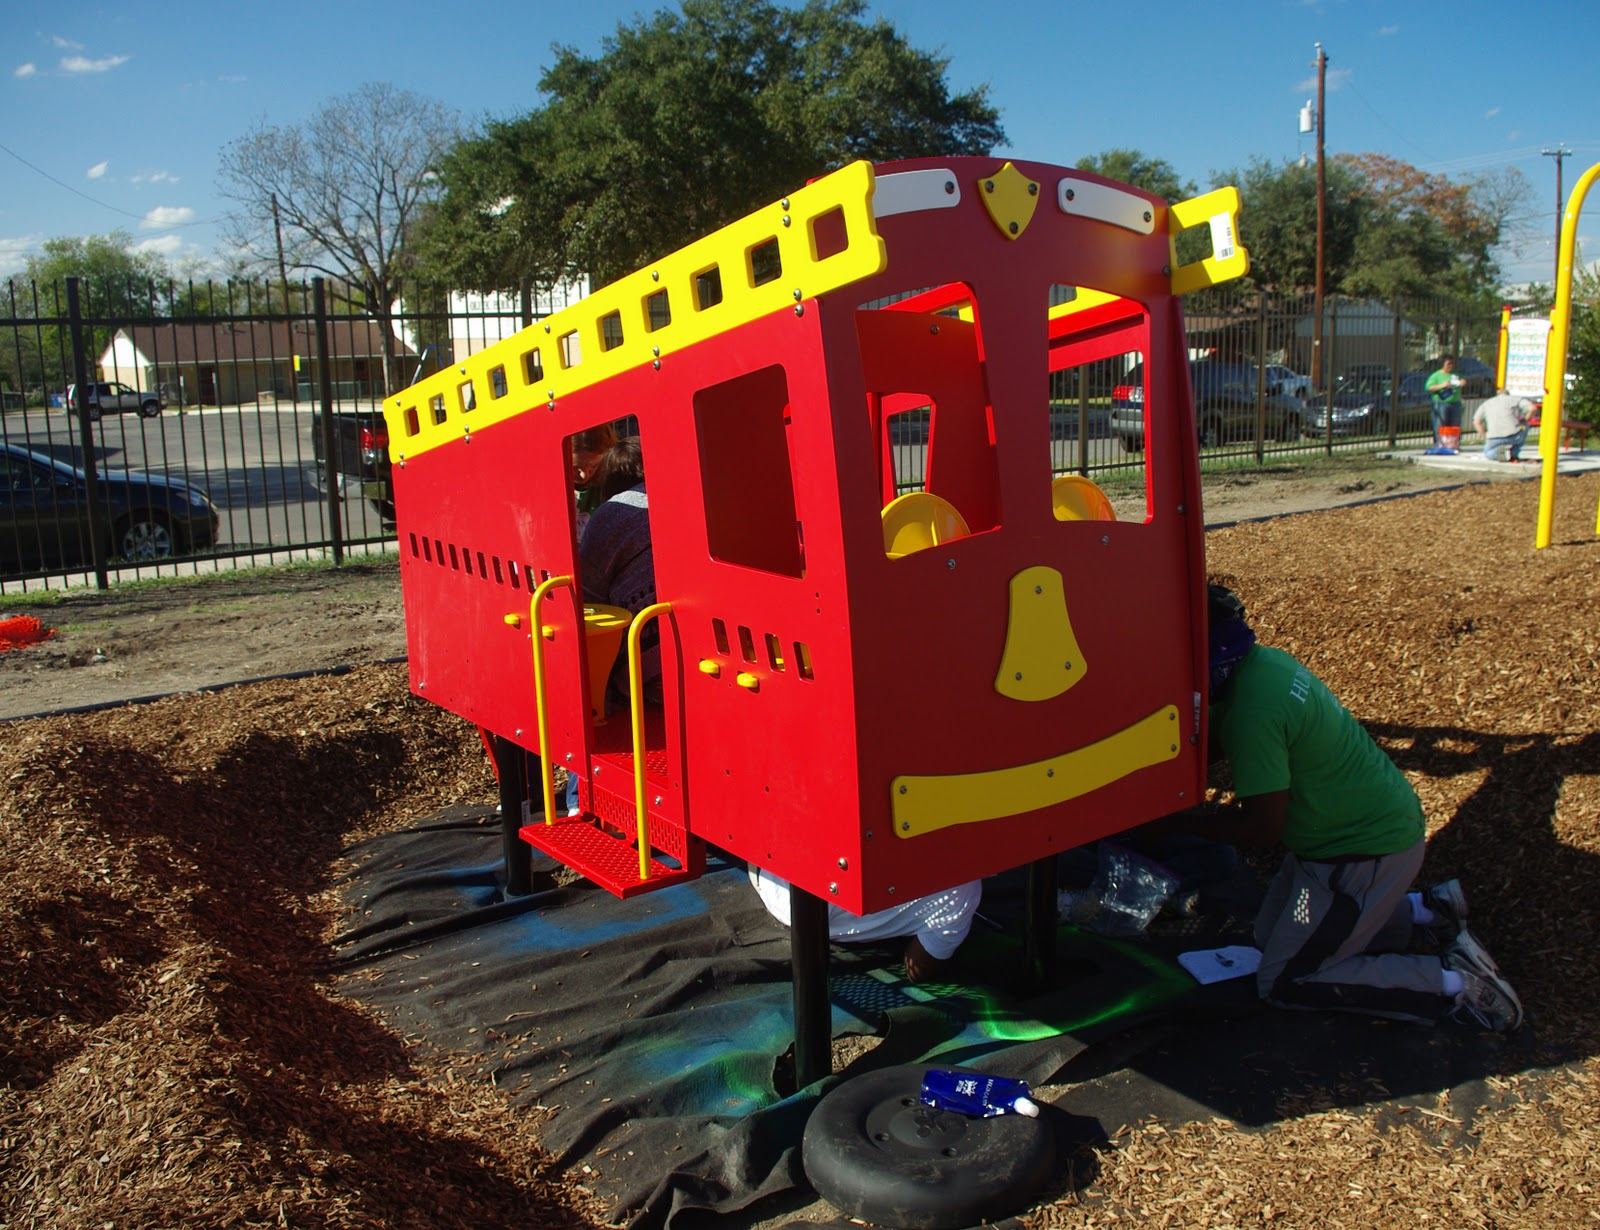 KABOOM! Building Playgrounds/Play Areas Accessible to